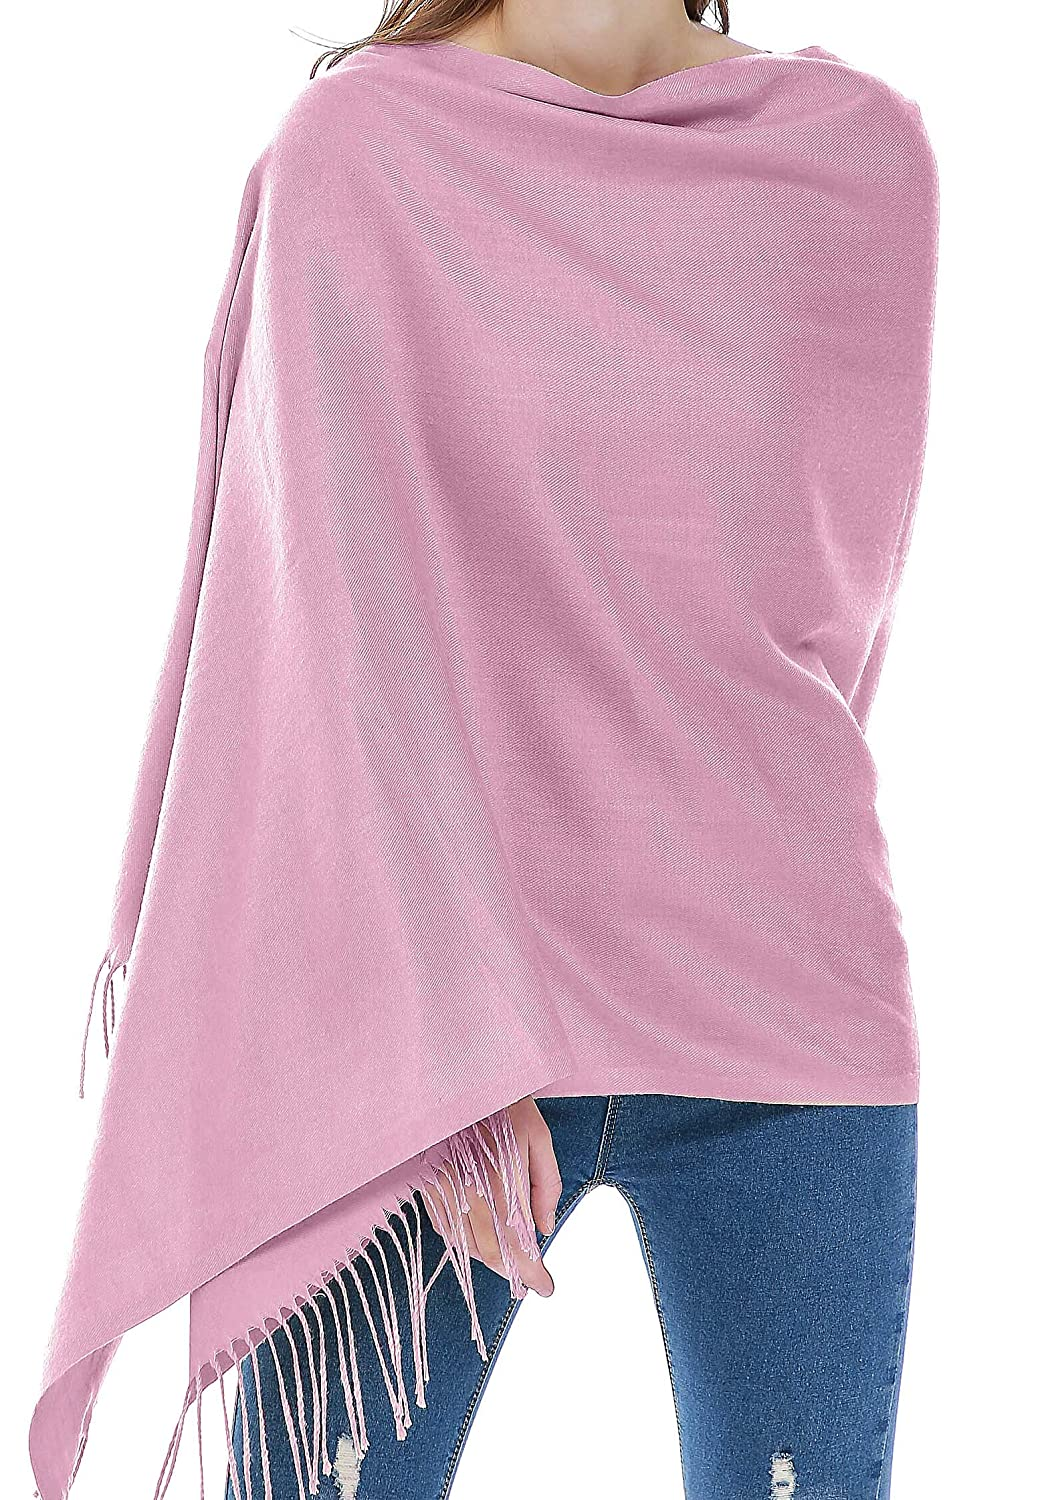 Light Purple Rheane Large Cashmere Feel Pashmina Shawl Scarf in Solid colors